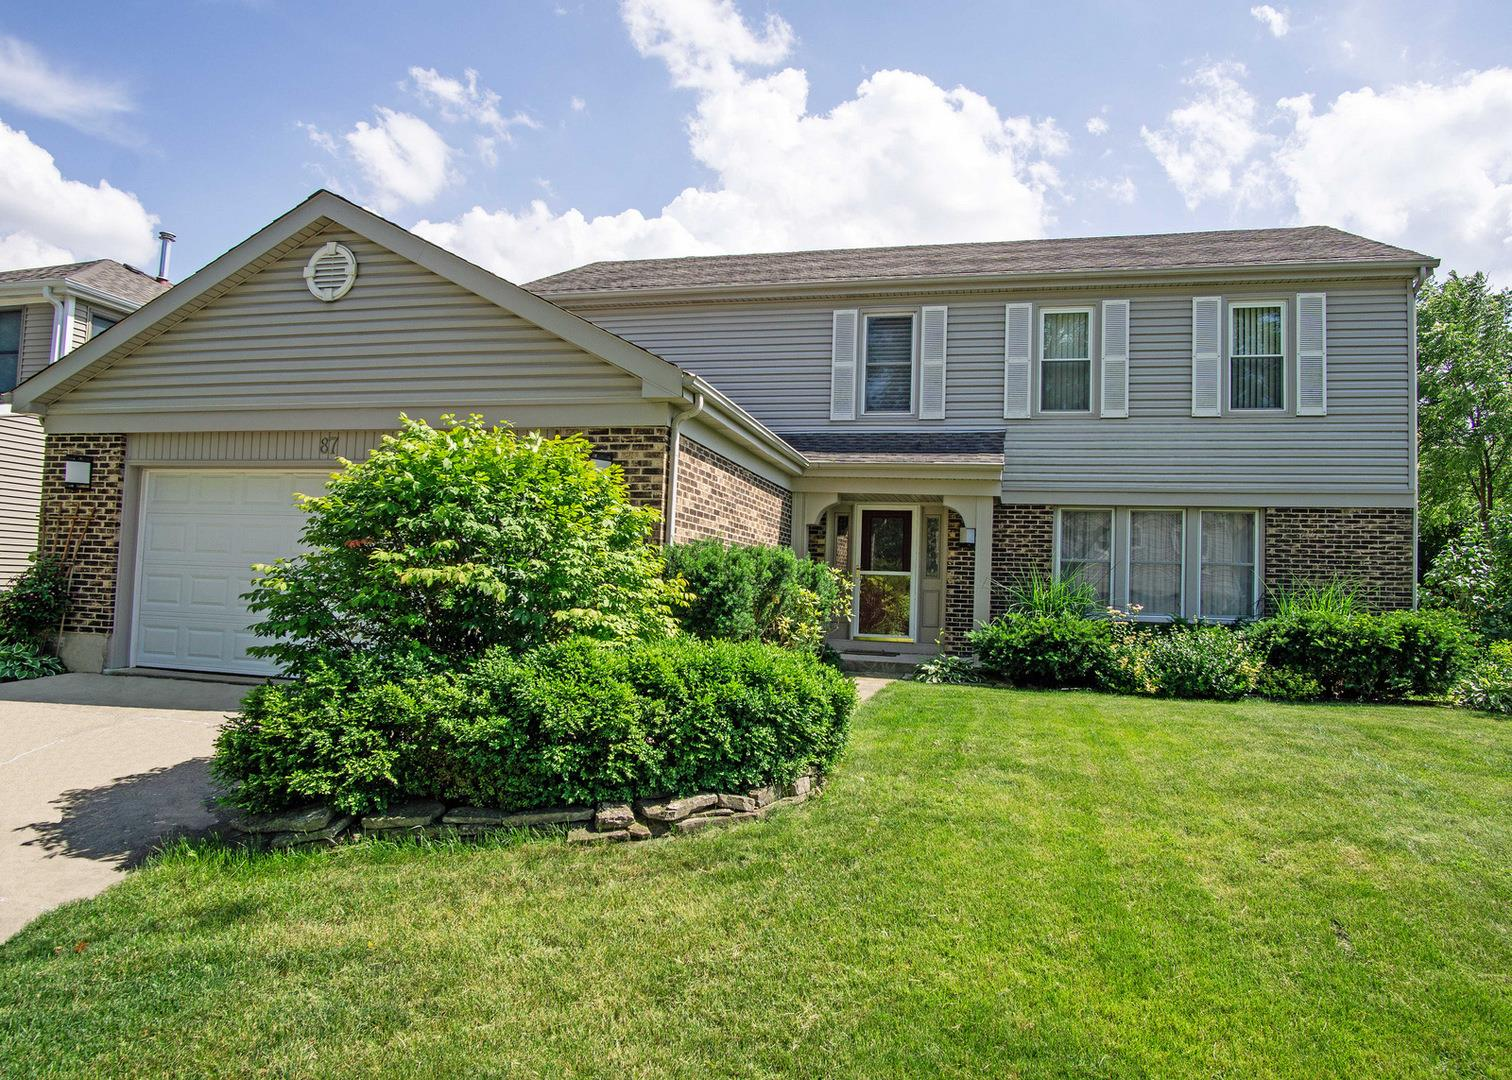 87 E Fox Hill Drive, Buffalo Grove, IL 60089 - #: 11071252